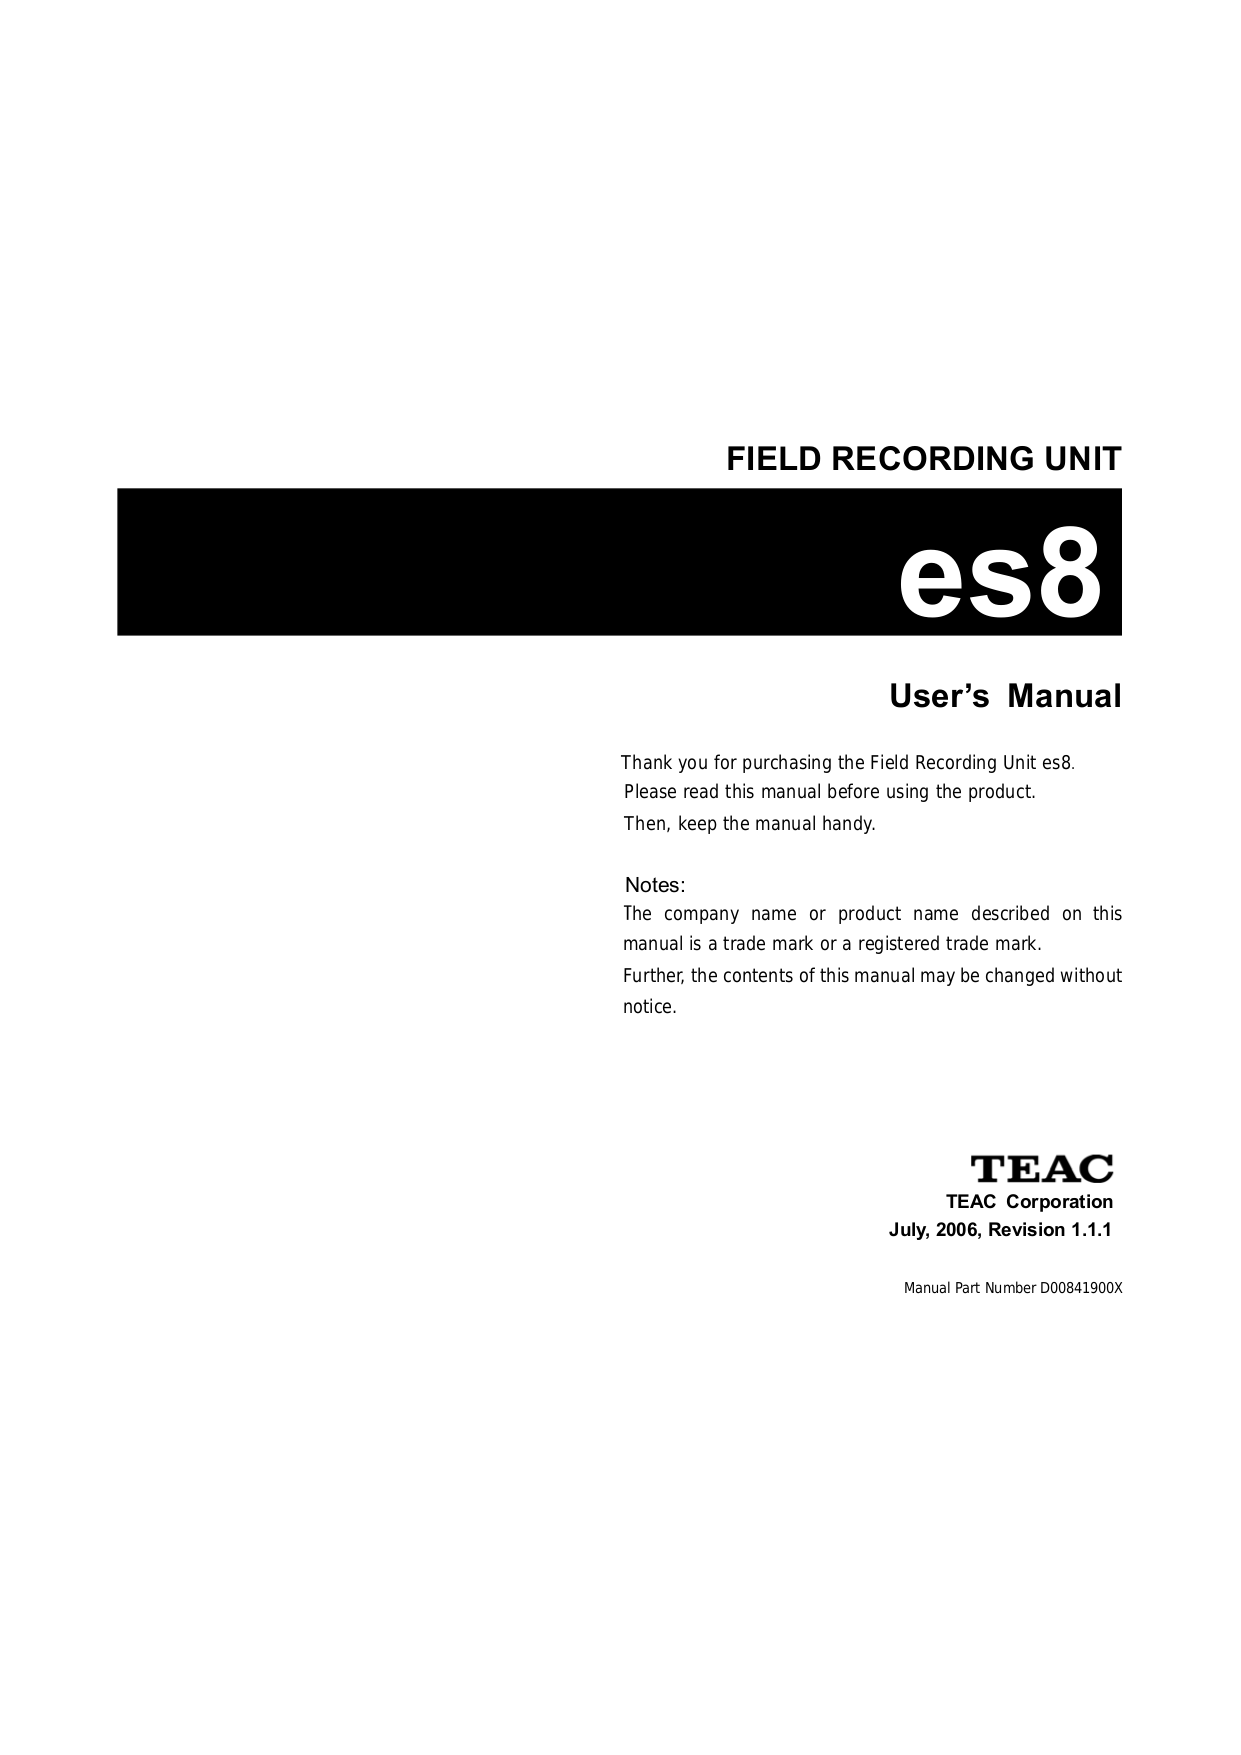 pdf for Teac Other D-05 Converter manual